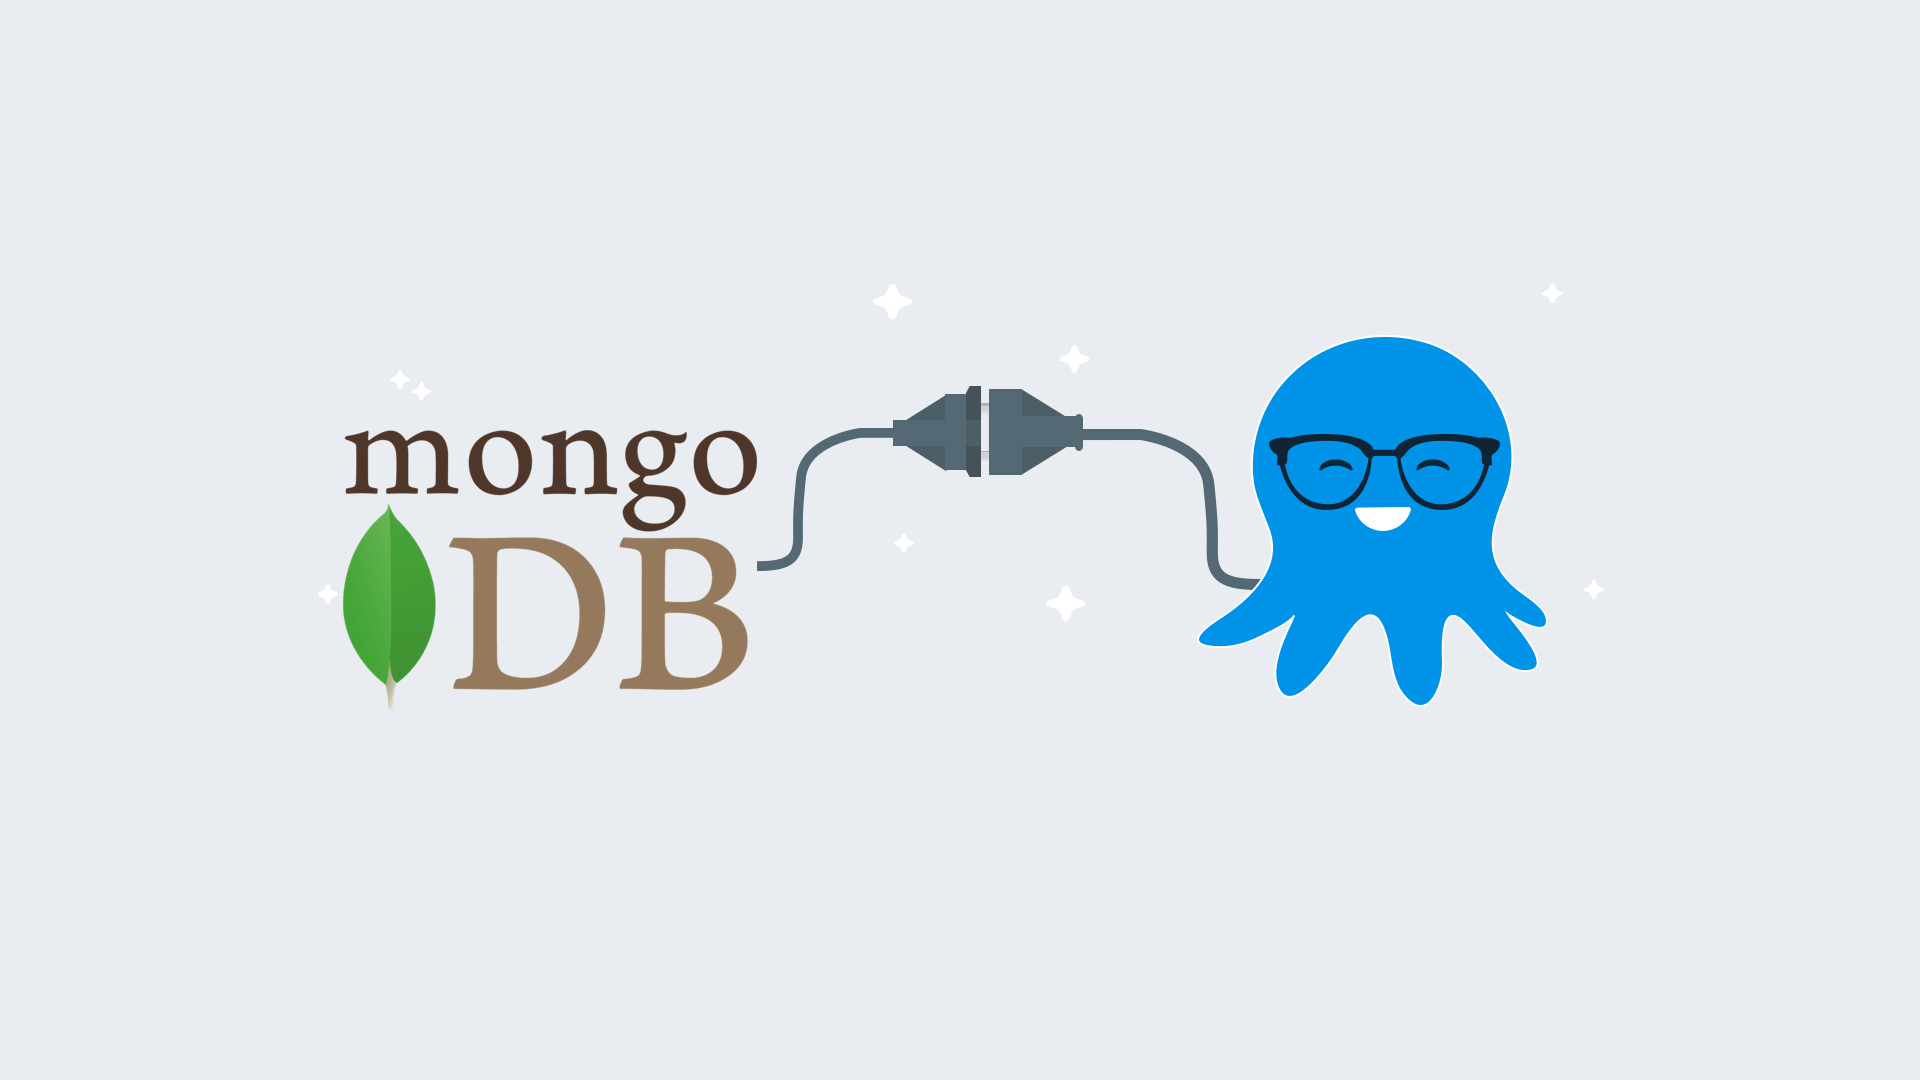 Deploying to MongoDB with Octopus Deploy and Liquibase